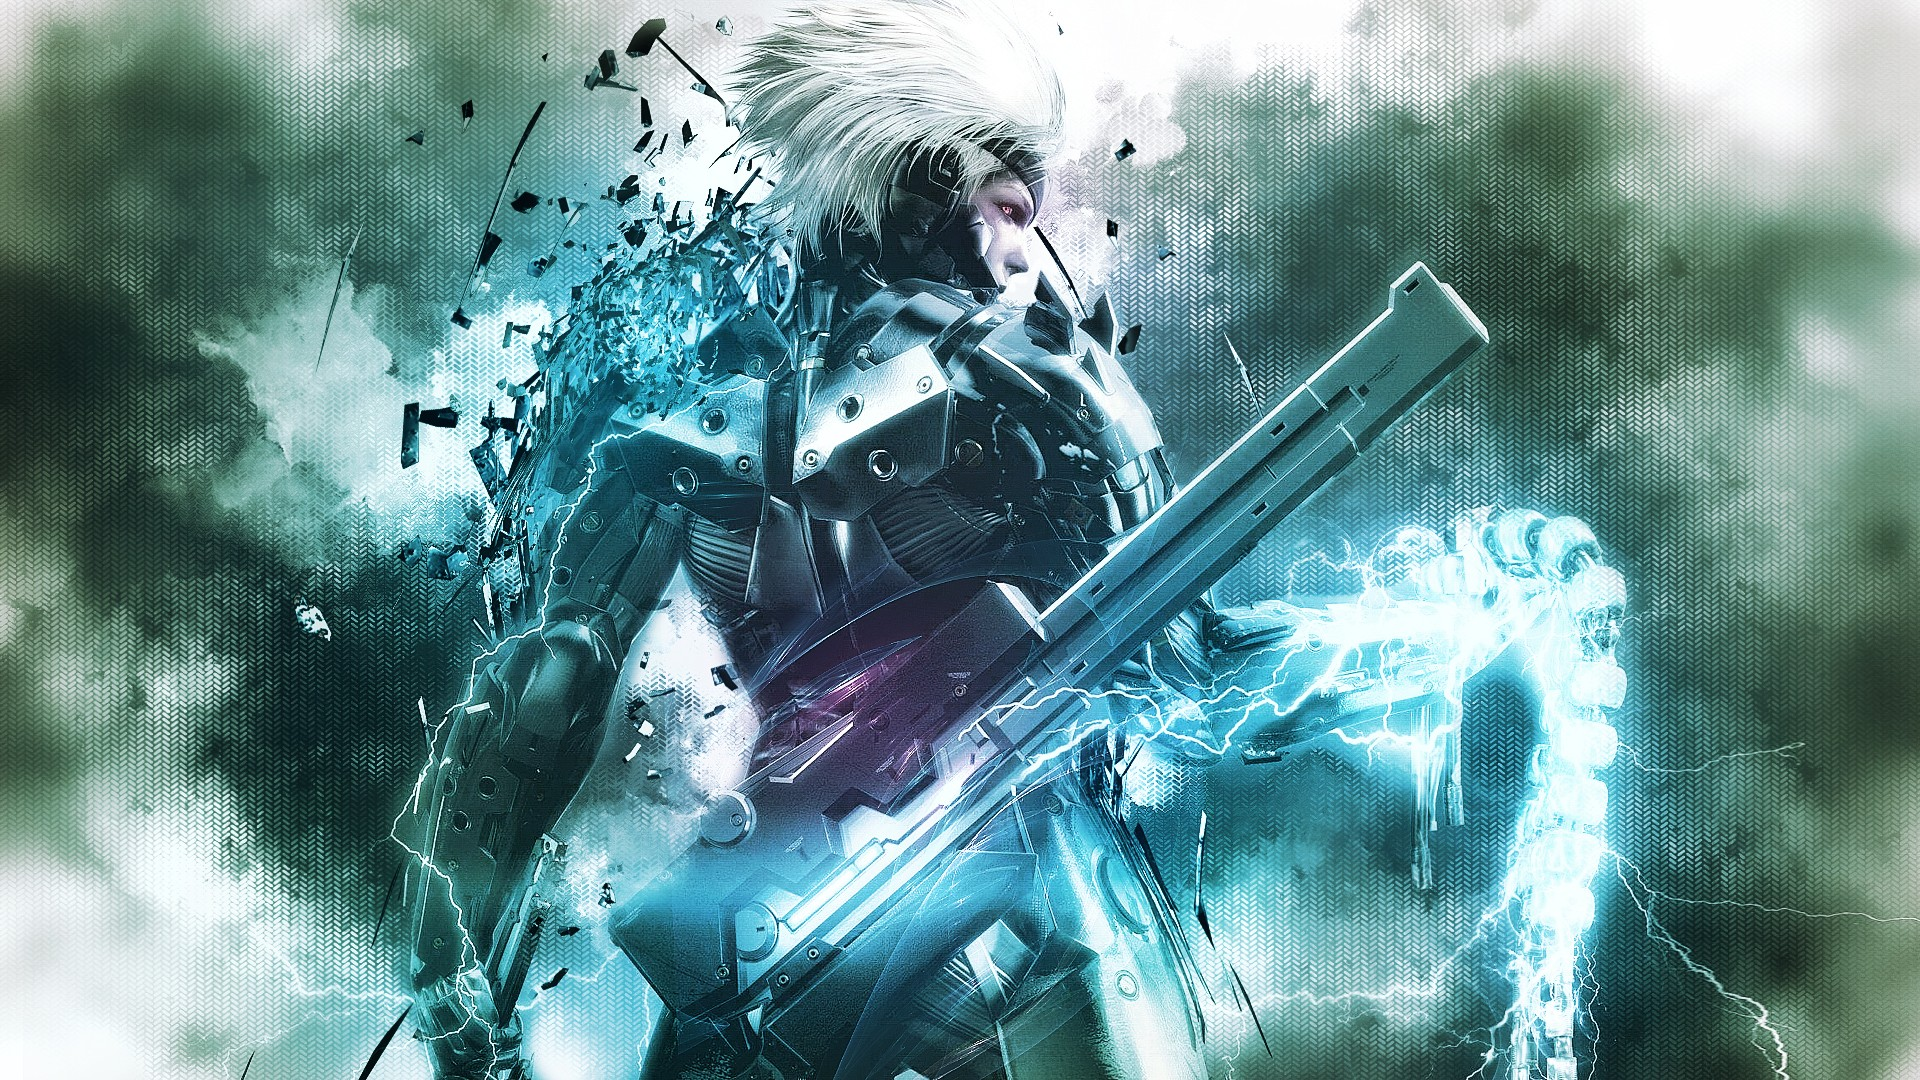 metal gear hd wallpapers - photo #37